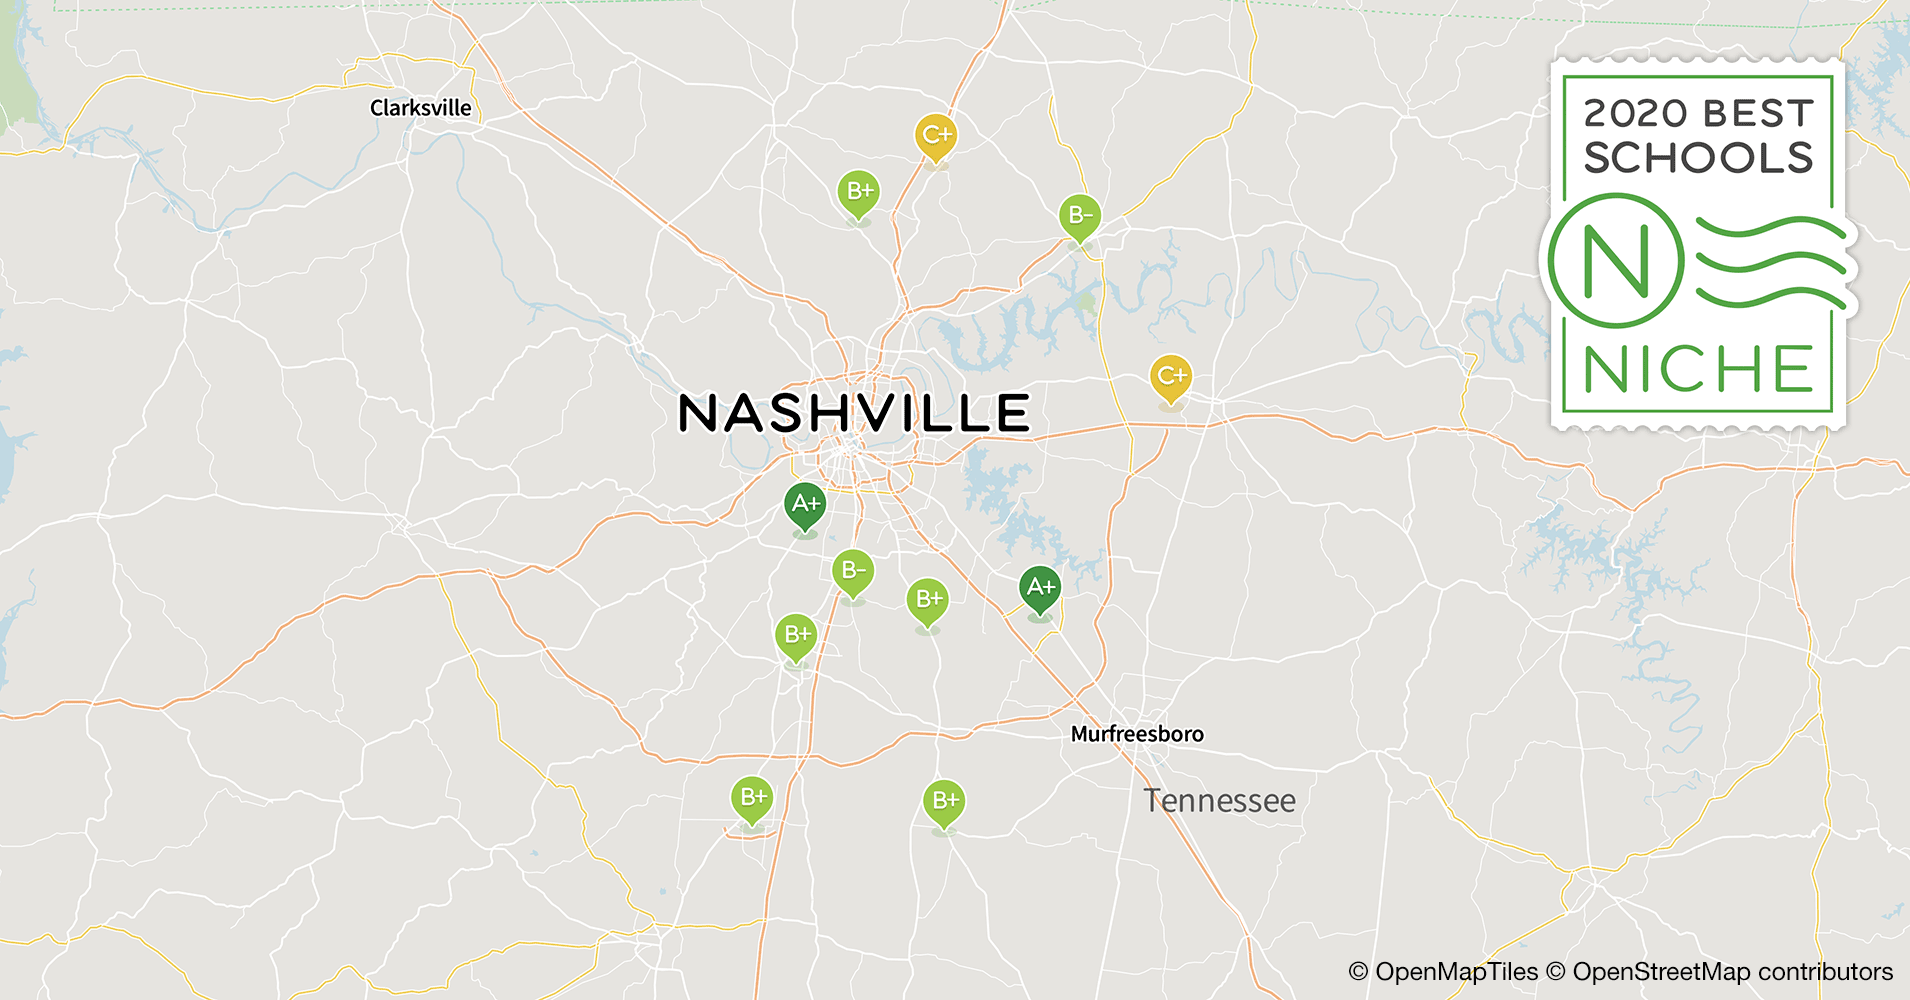 2020 Best School Districts in the Nashville Area - Niche